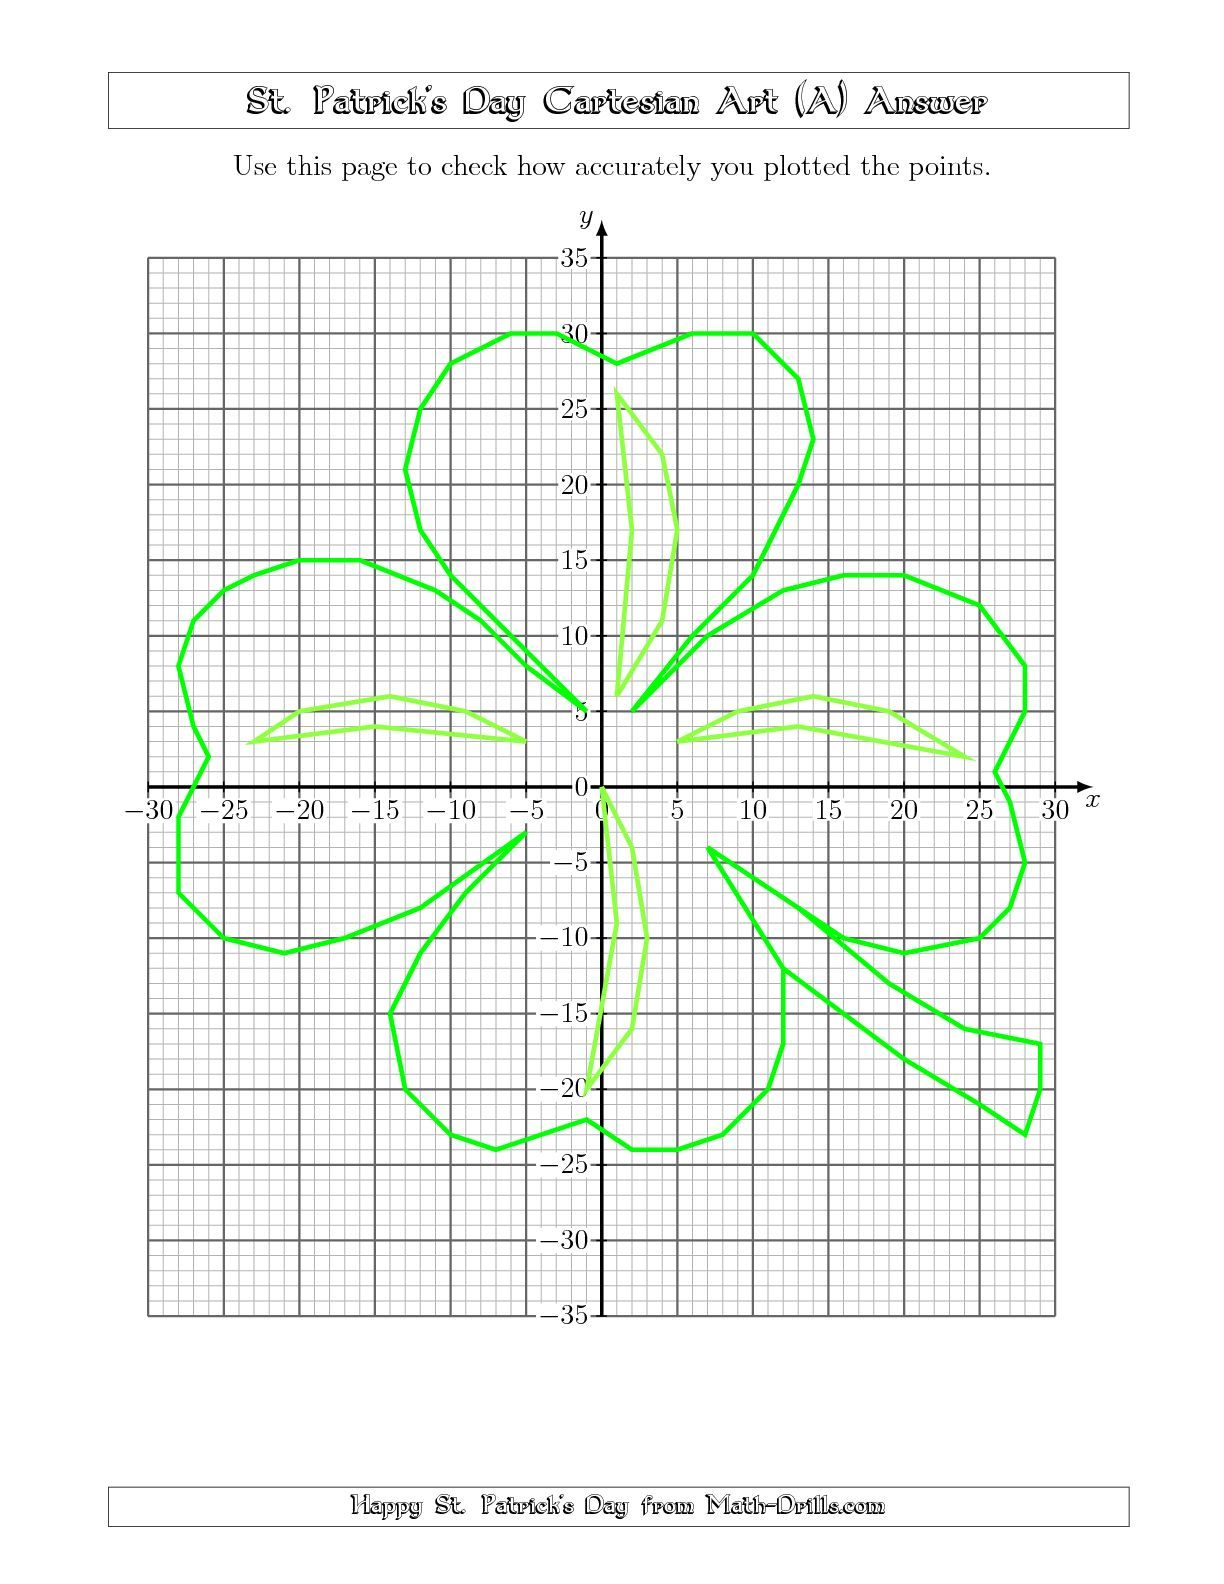 New St Patrick S Day Cartesian Art Shamrock Math